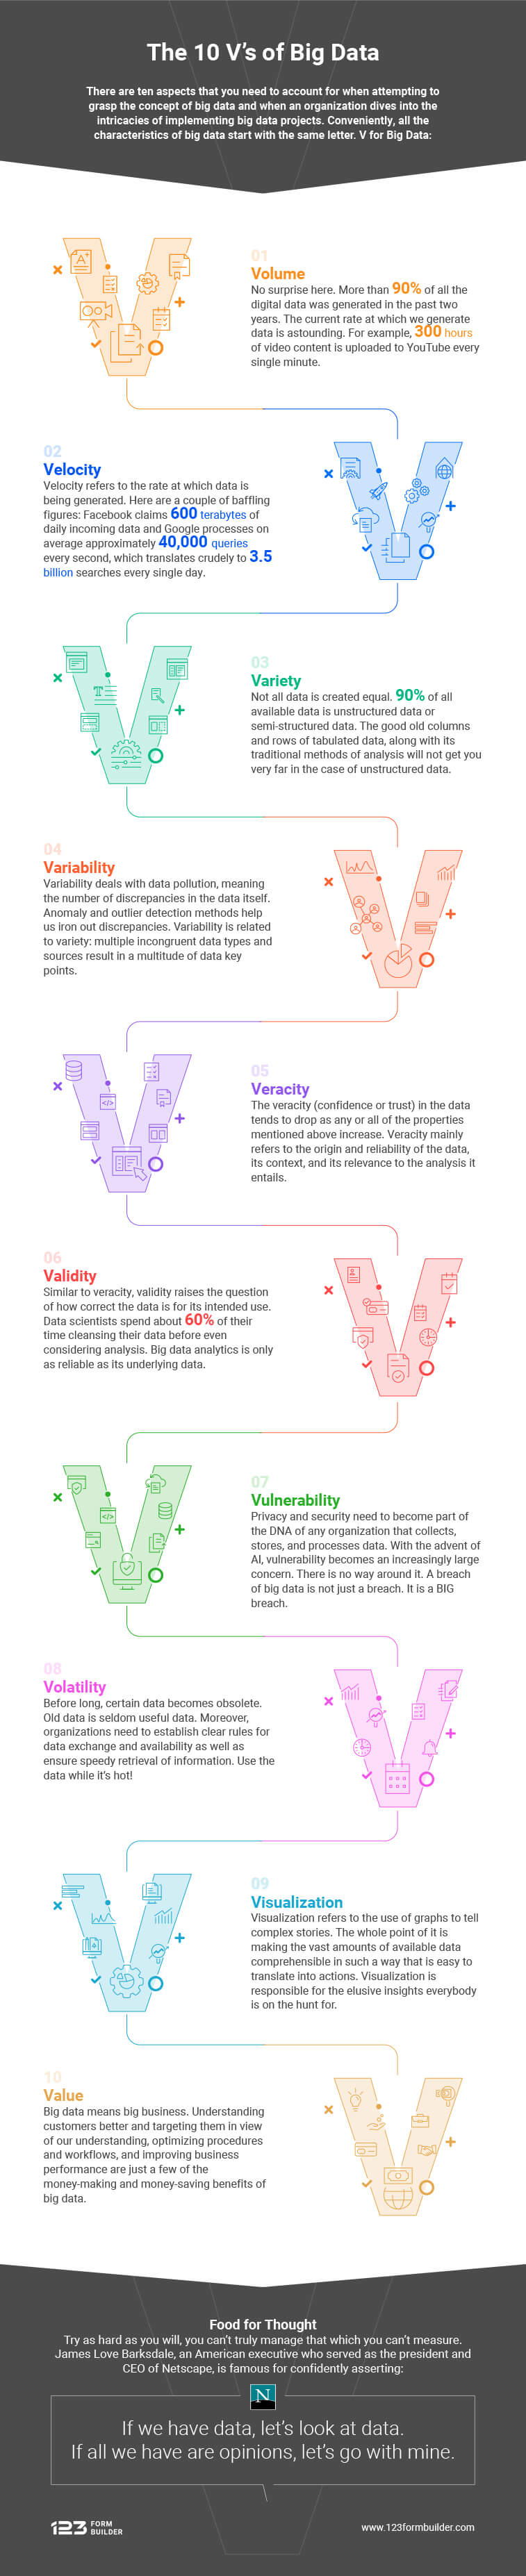 the 10 vs of big data infographic by 123formbuilder